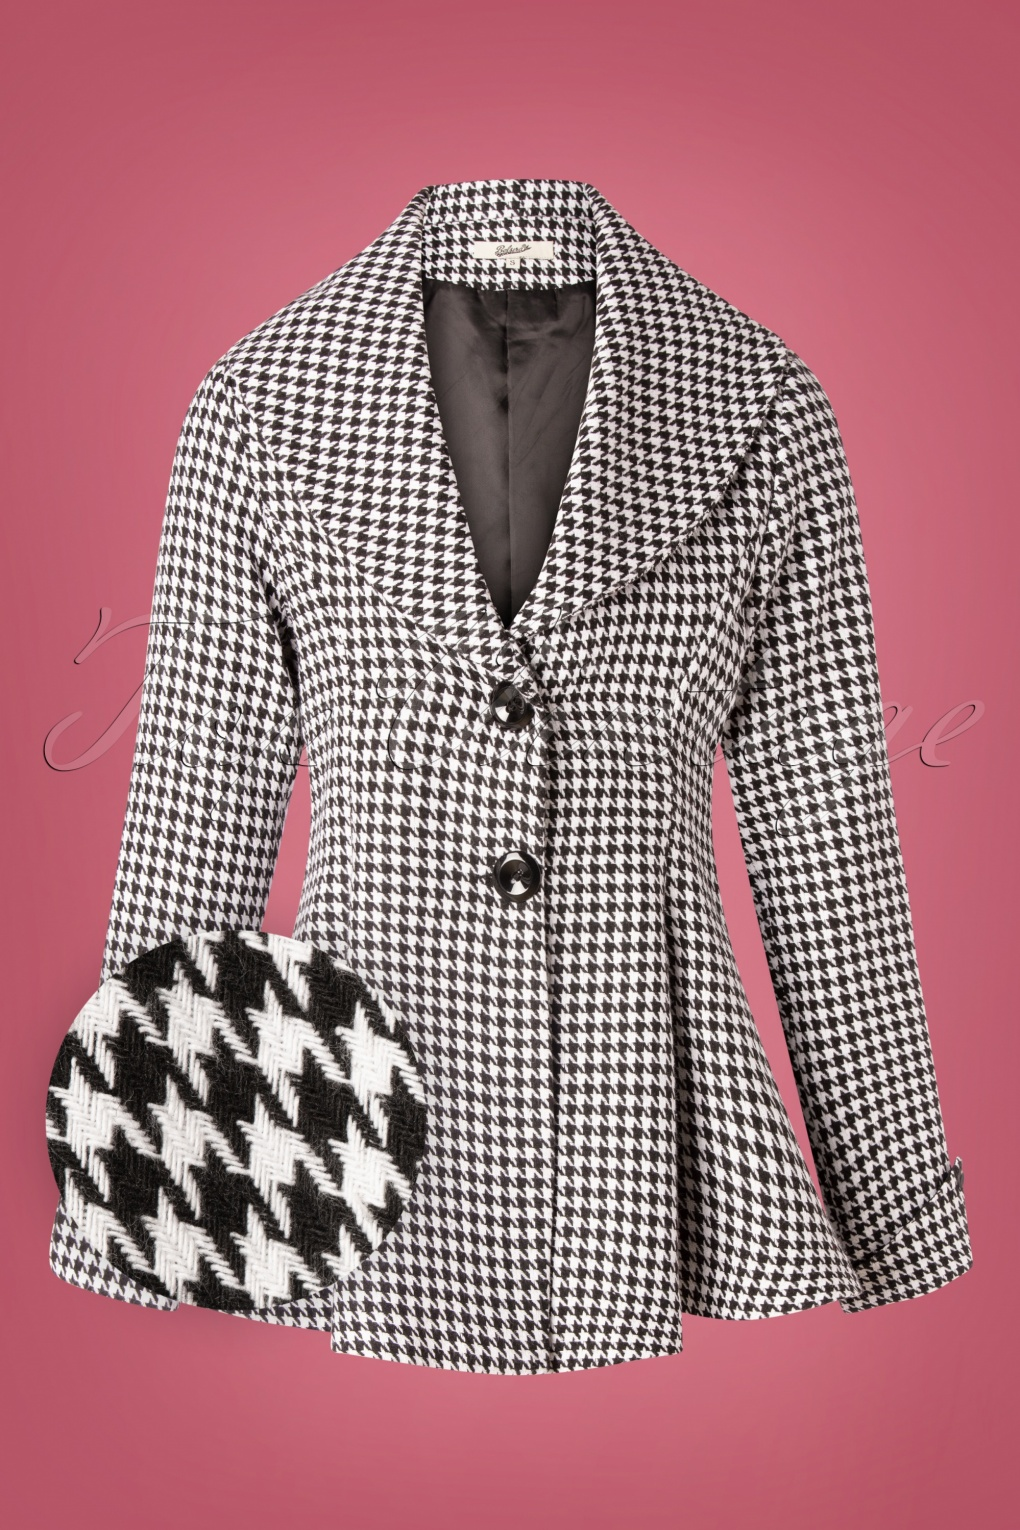 Vintage Coats & Jackets | Retro Coats and Jackets 50s Carlie Houndstooth Blazer in Black and White £83.10 AT vintagedancer.com